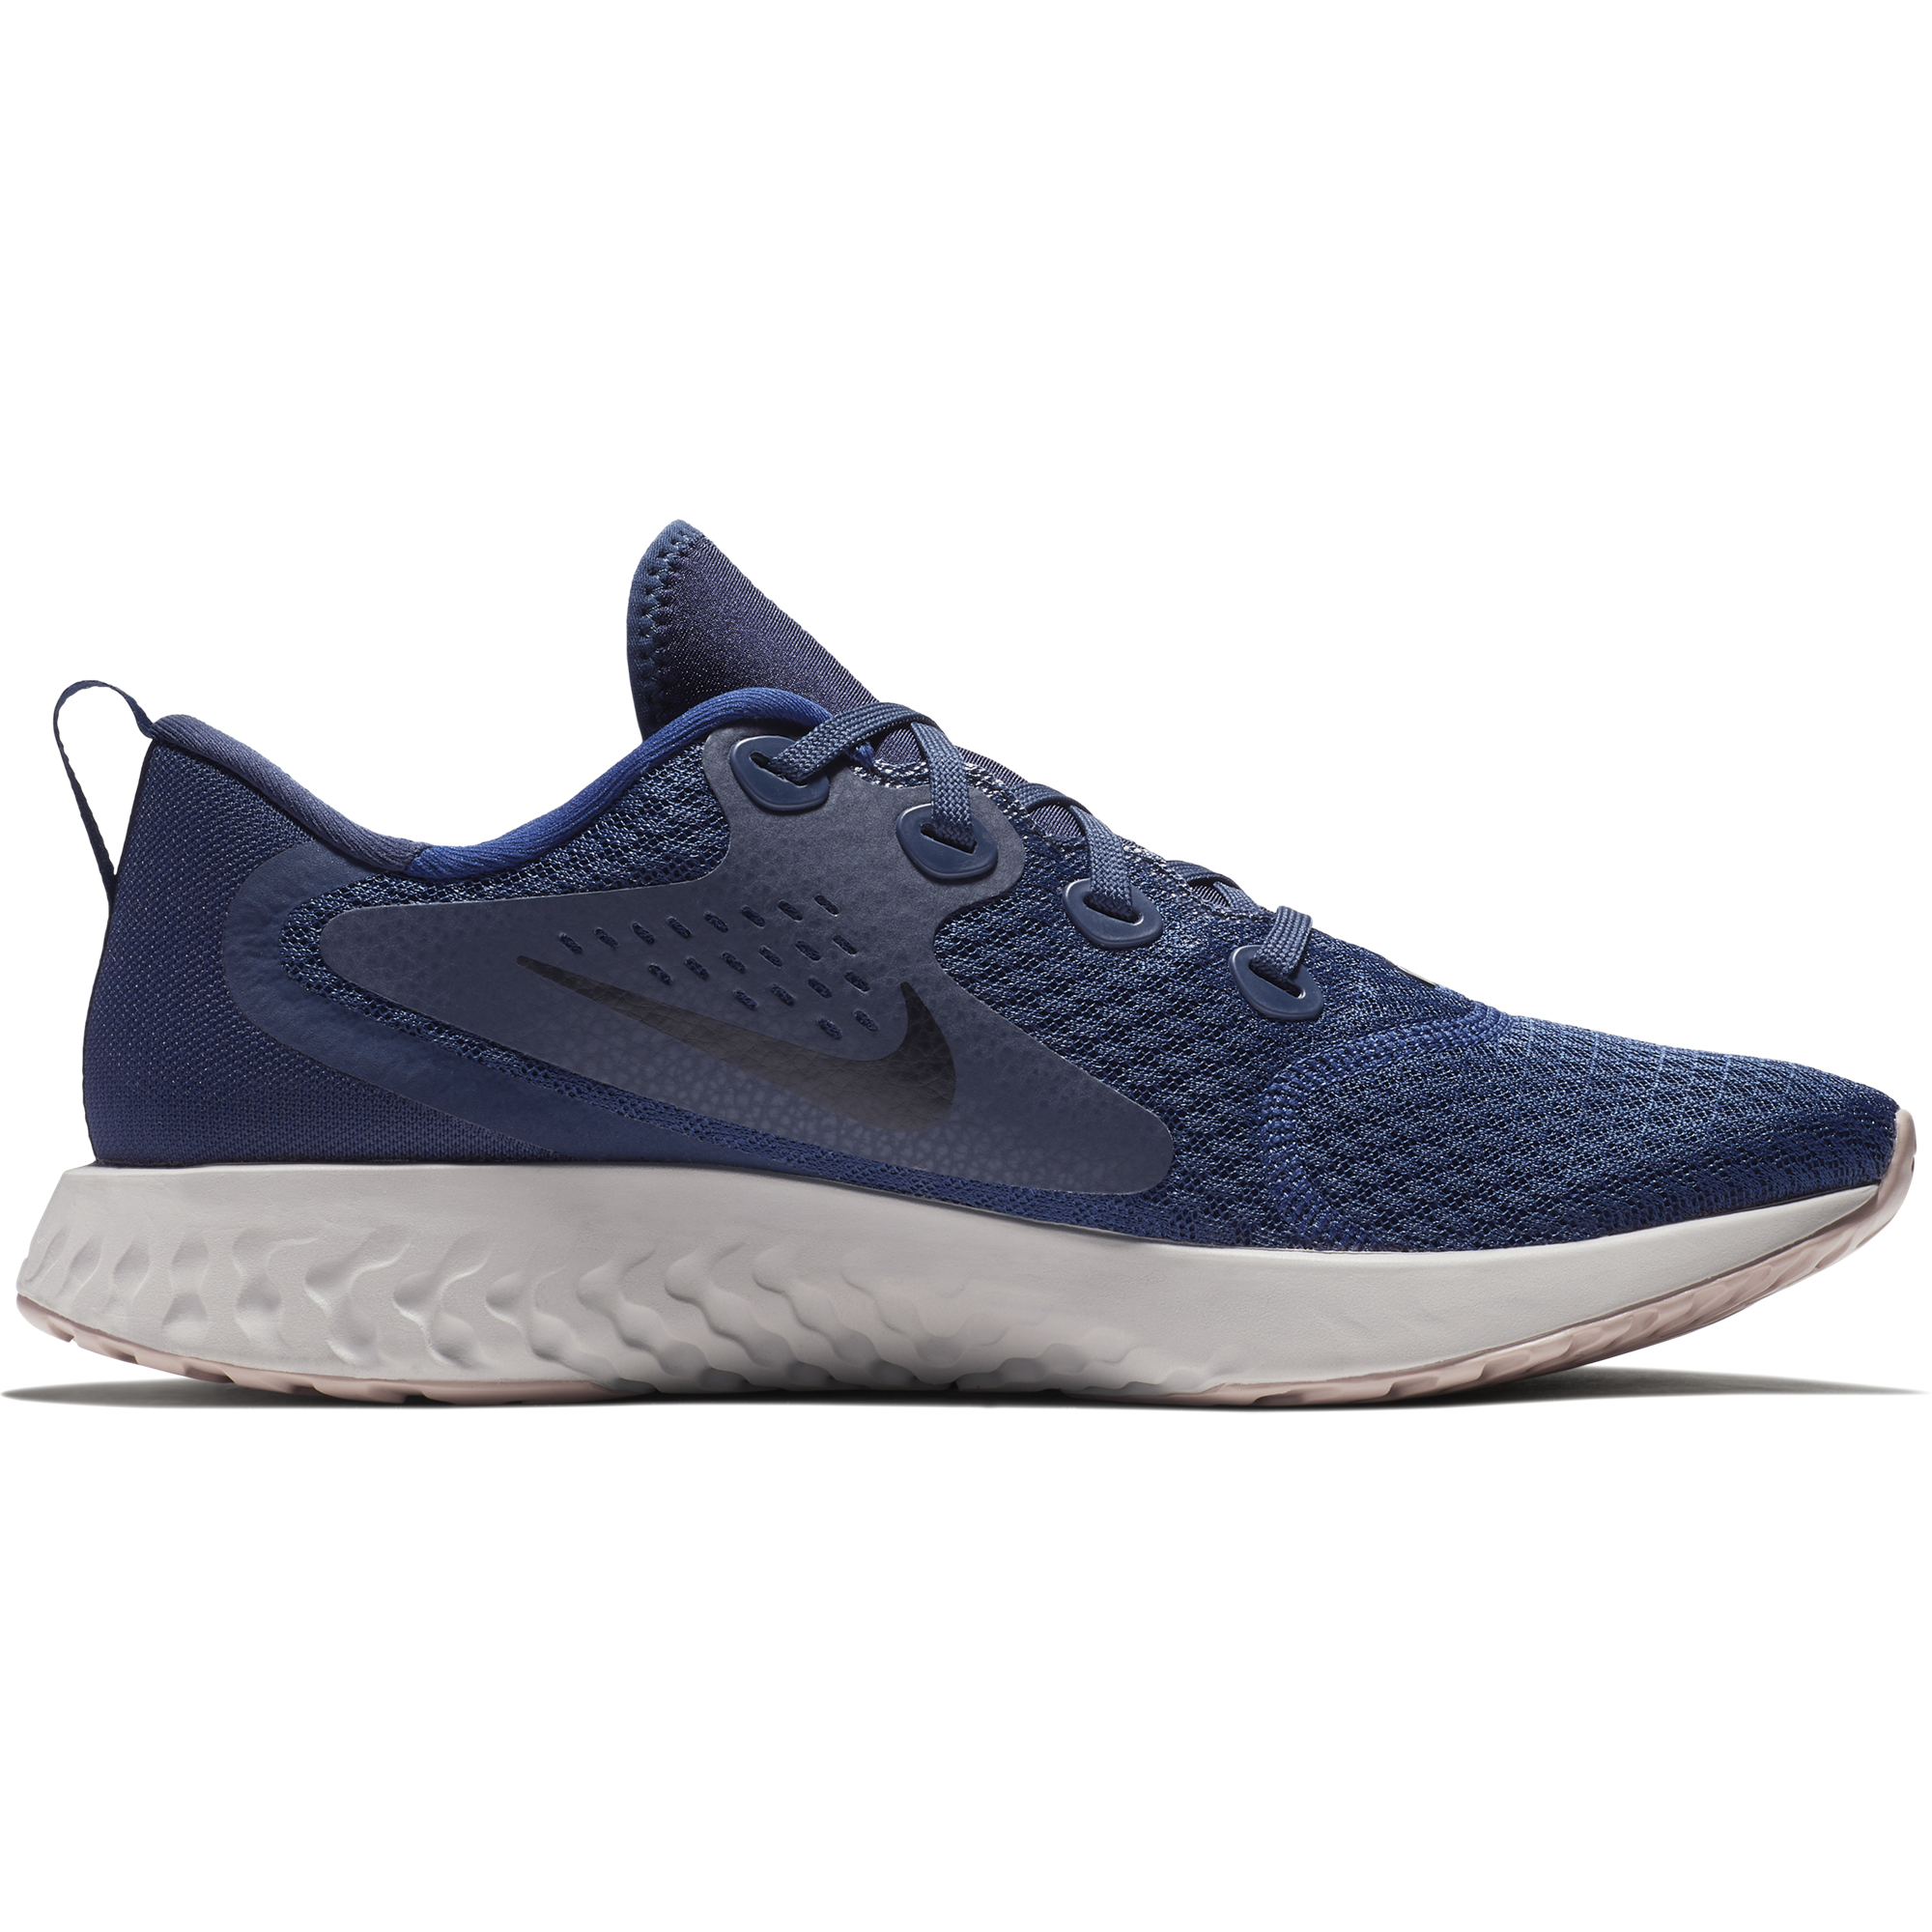 innovative design 08557 a4fc1 Men Legend React Running Shoe, Blue Void Black Obsidian Diffused Taupe